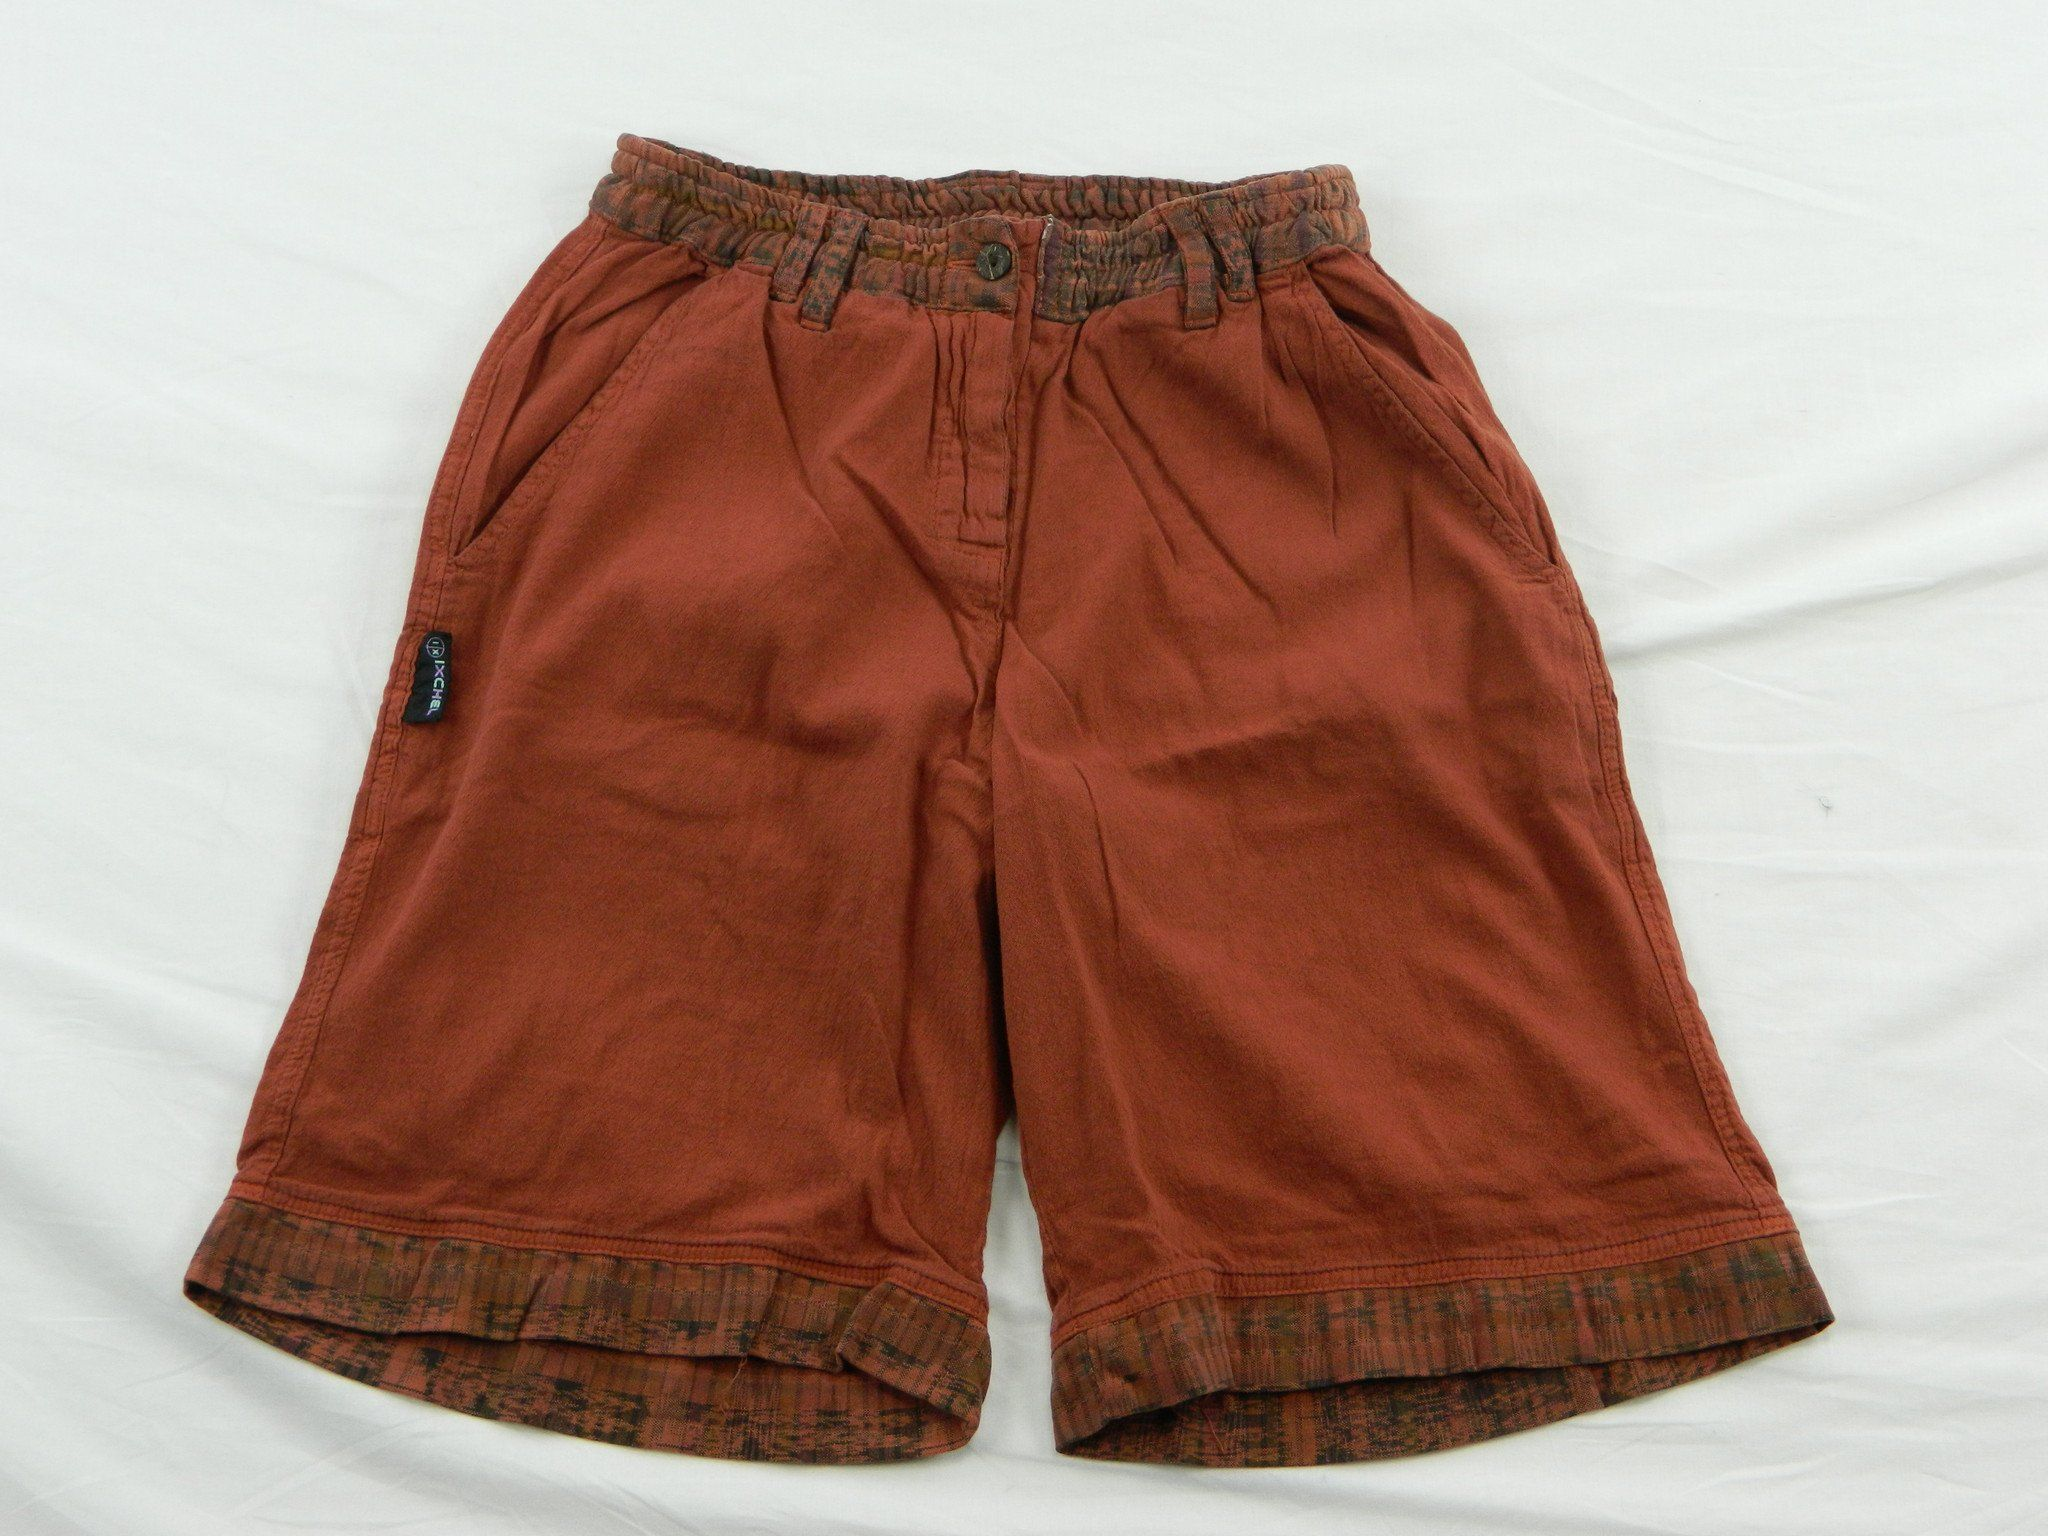 23c8337cbee Women's shorts in garment dyed cotton with hand woven trim ...